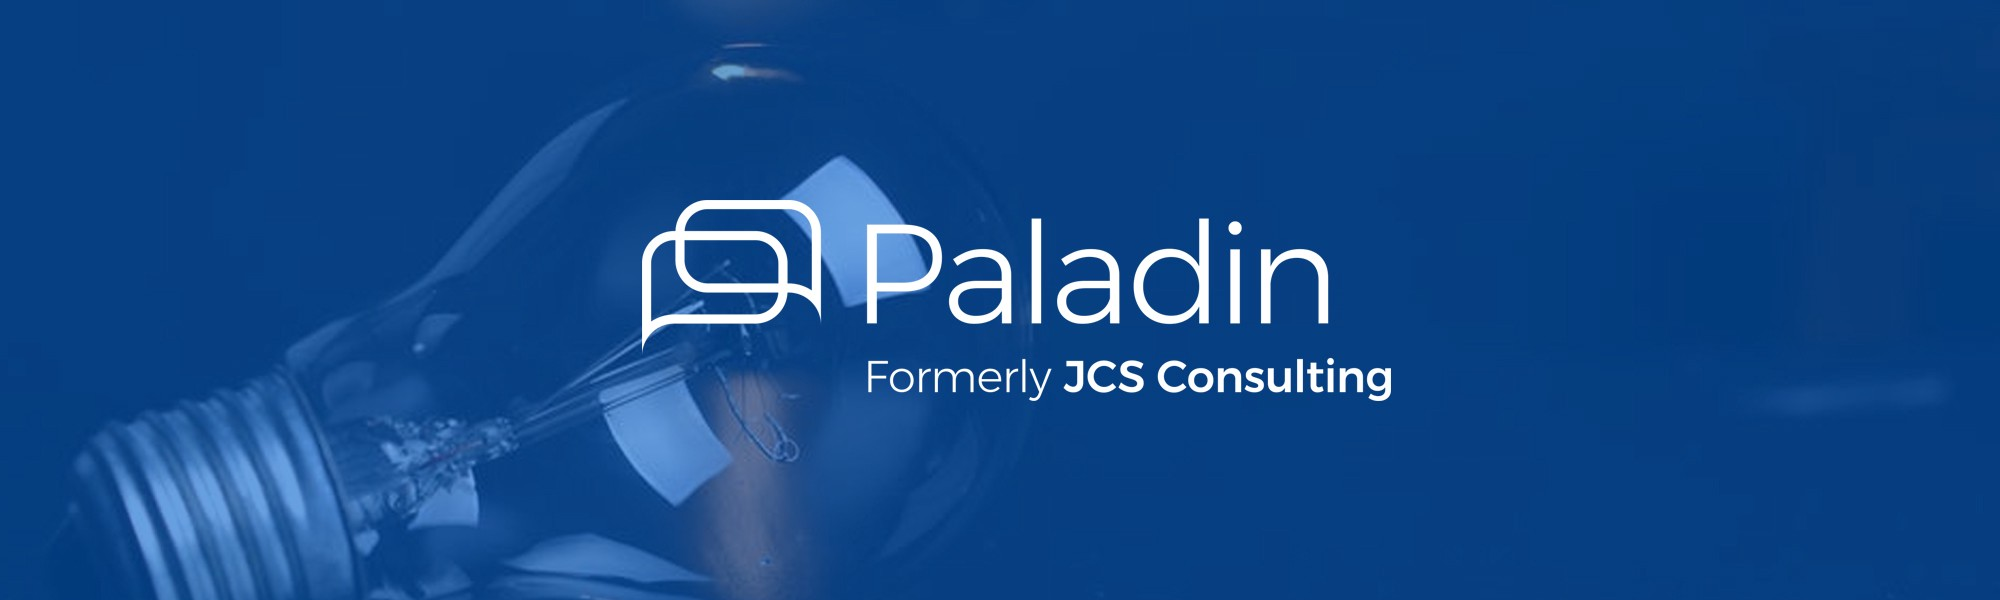 Paladin Integrates Box with ServiceNow for Seamless Document Sharing